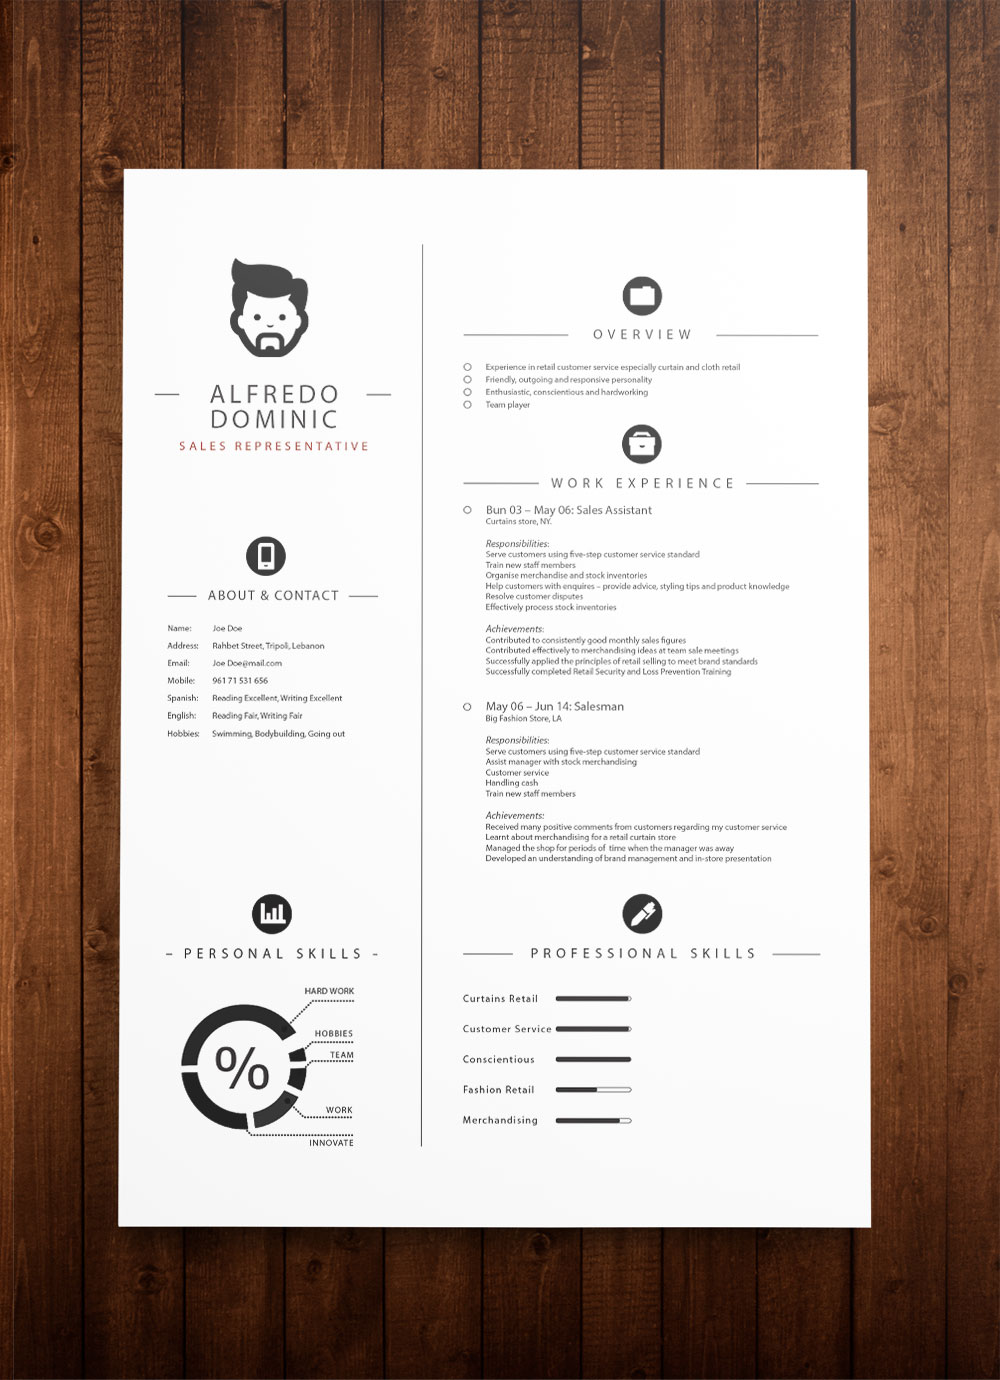 Top 3 resume templates in december 2014 - Simple resume design ...